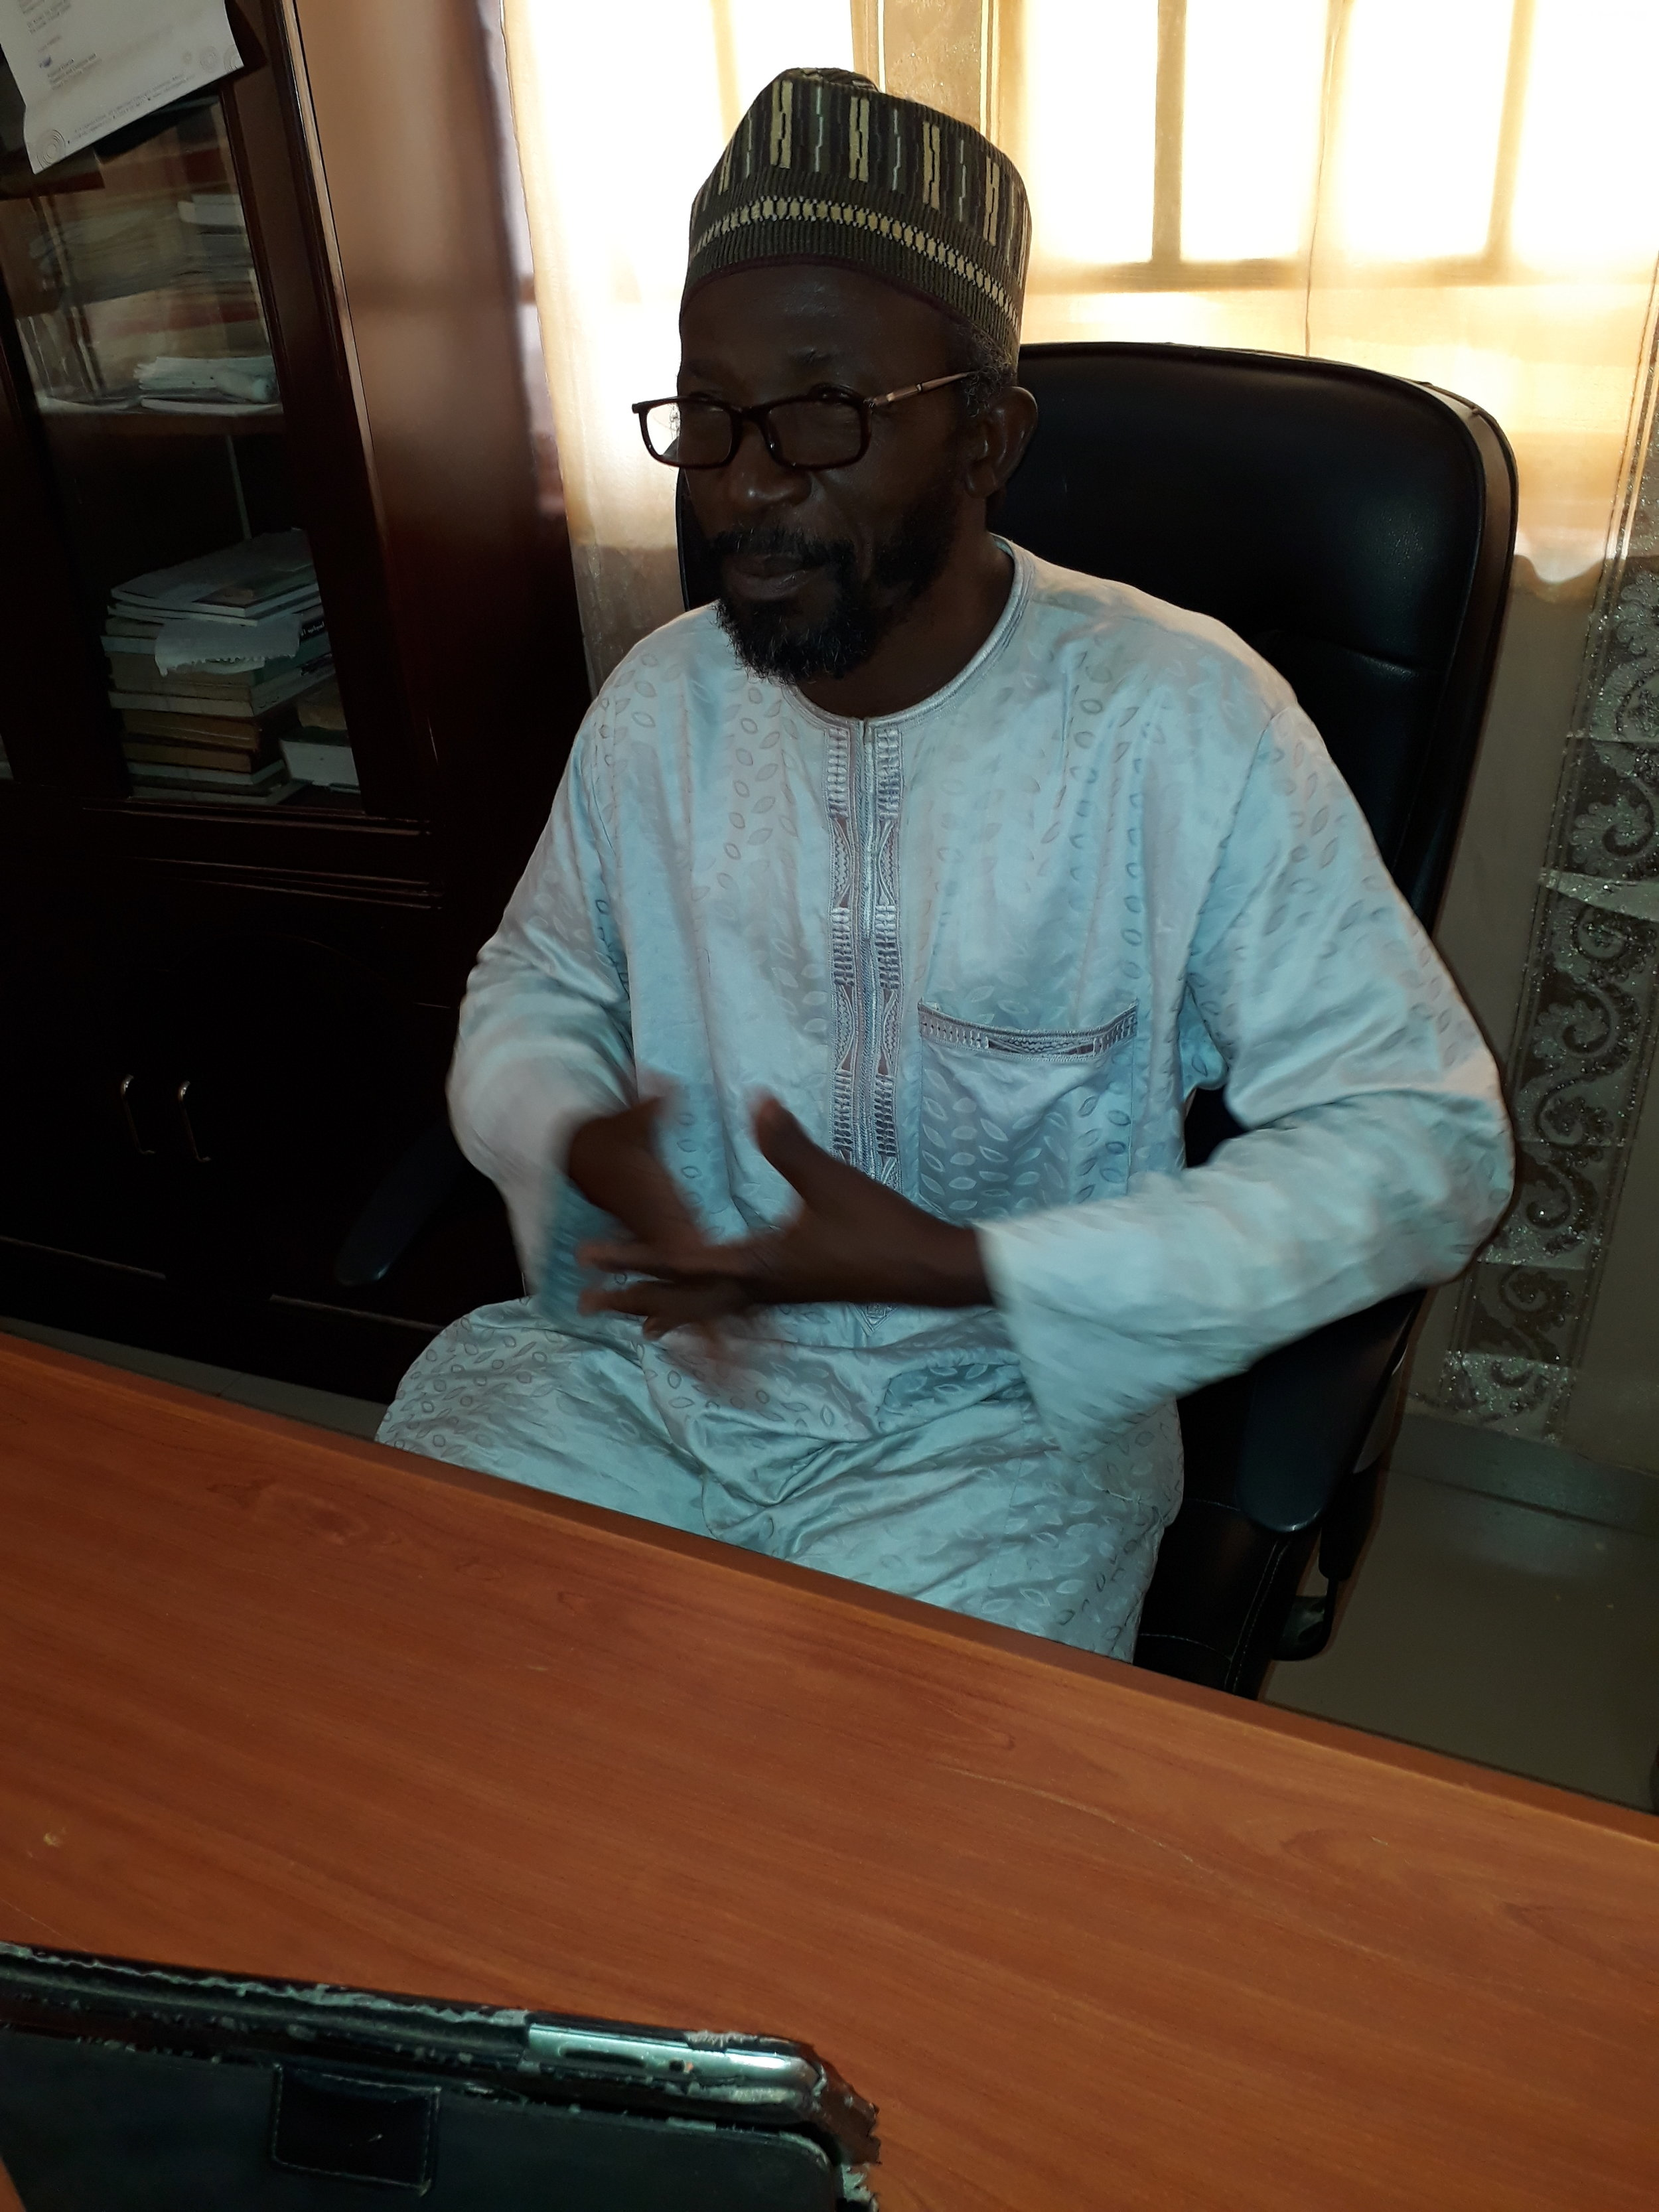 Imam Muhammad Sani isa, Director of Intervention, IMC. Mobile number: 0802-774-6868 or 0809-934-7836. Email: isahsani2@gmail.com